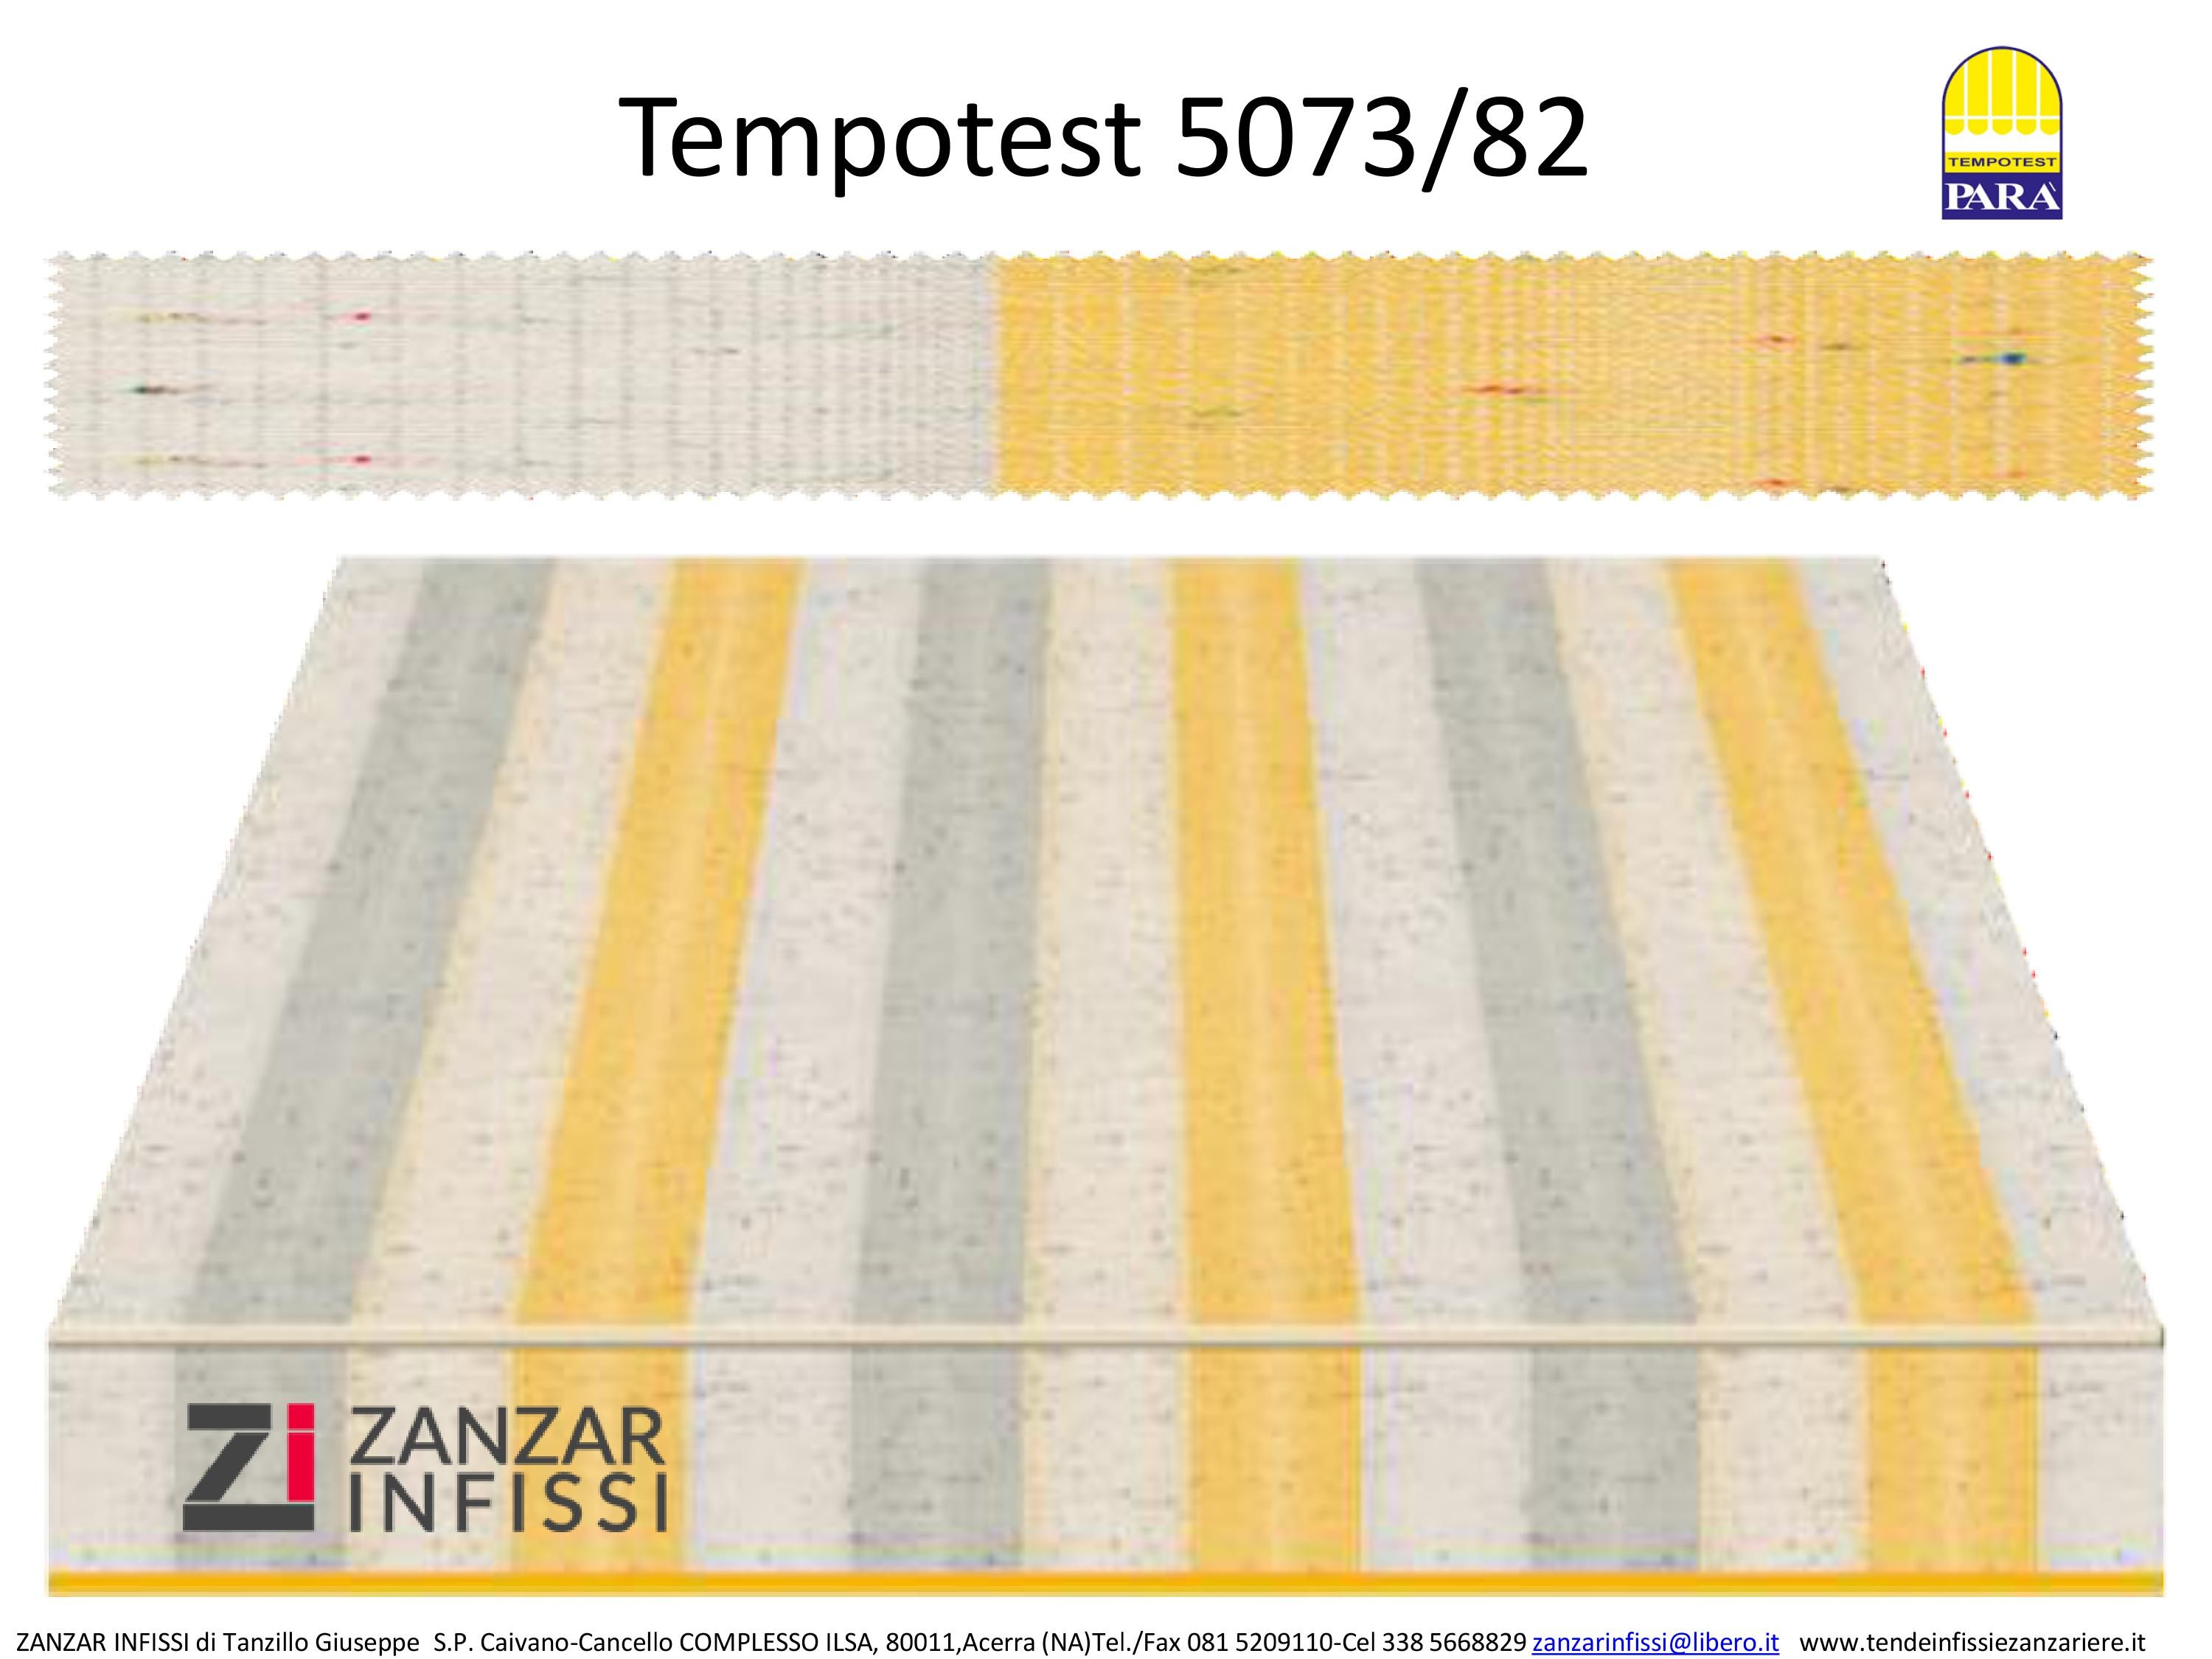 Tempotest 5073/82